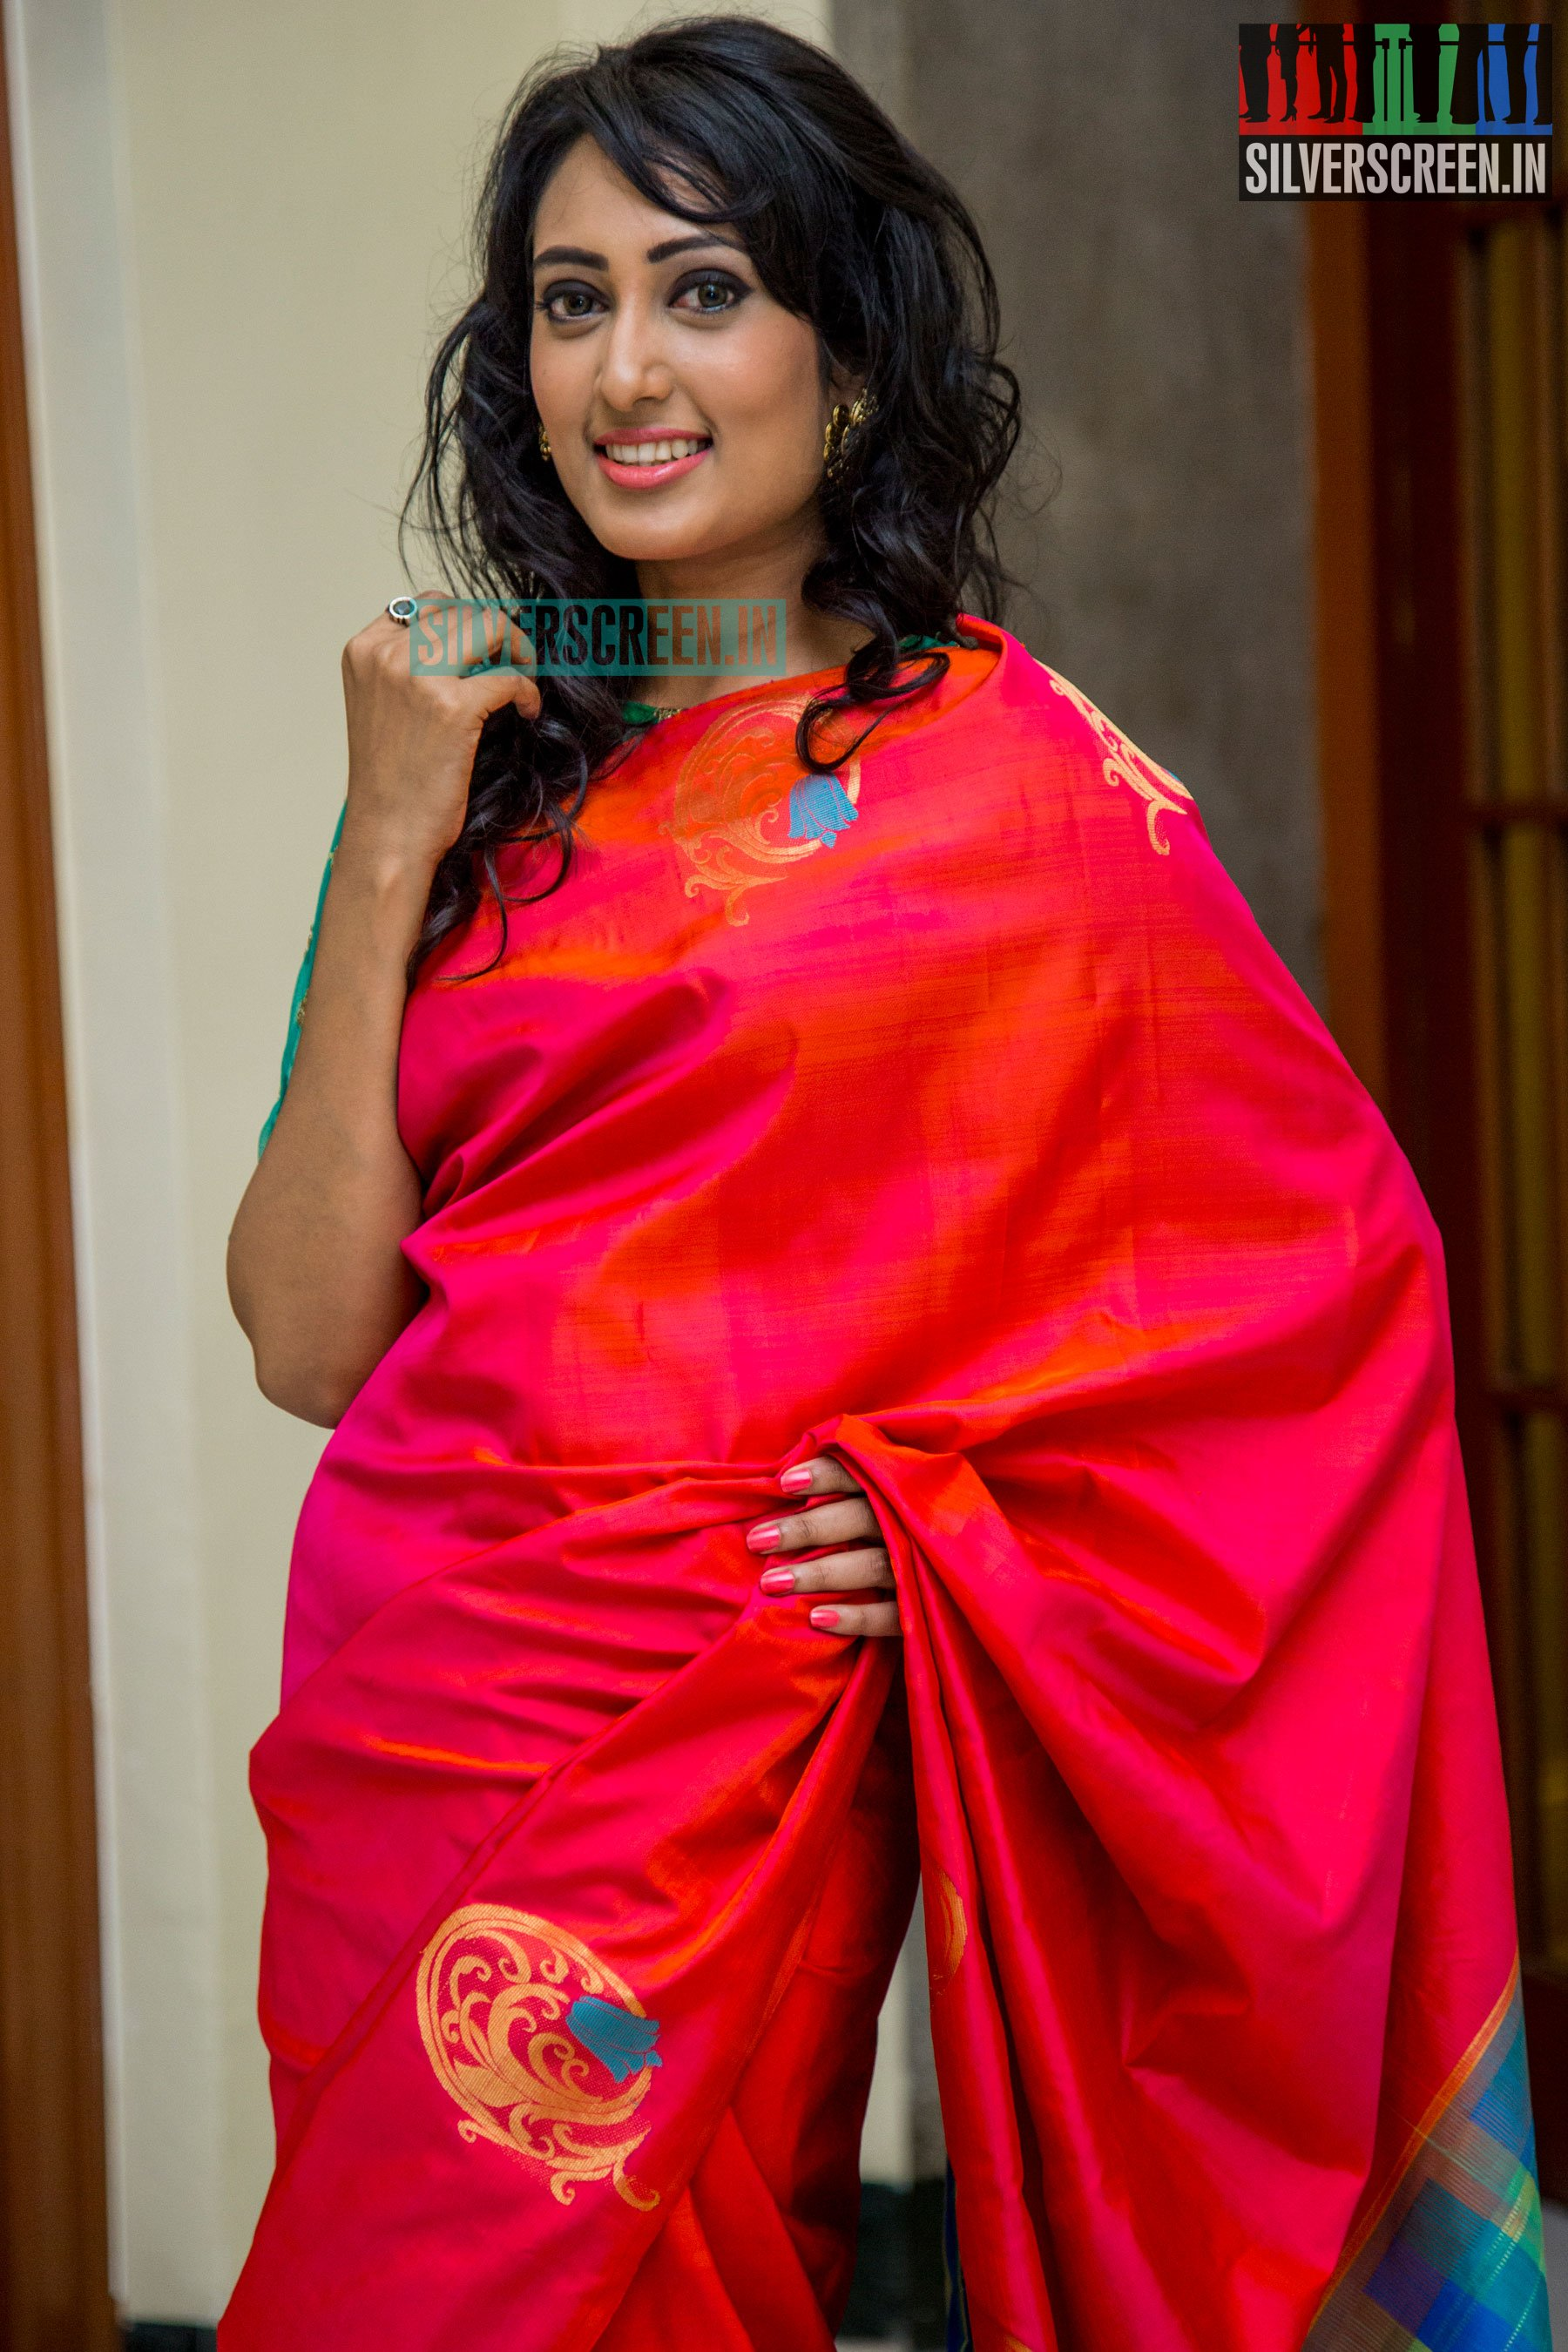 Palam Silks Unveils Their Diwali Collections – Silverscreen in